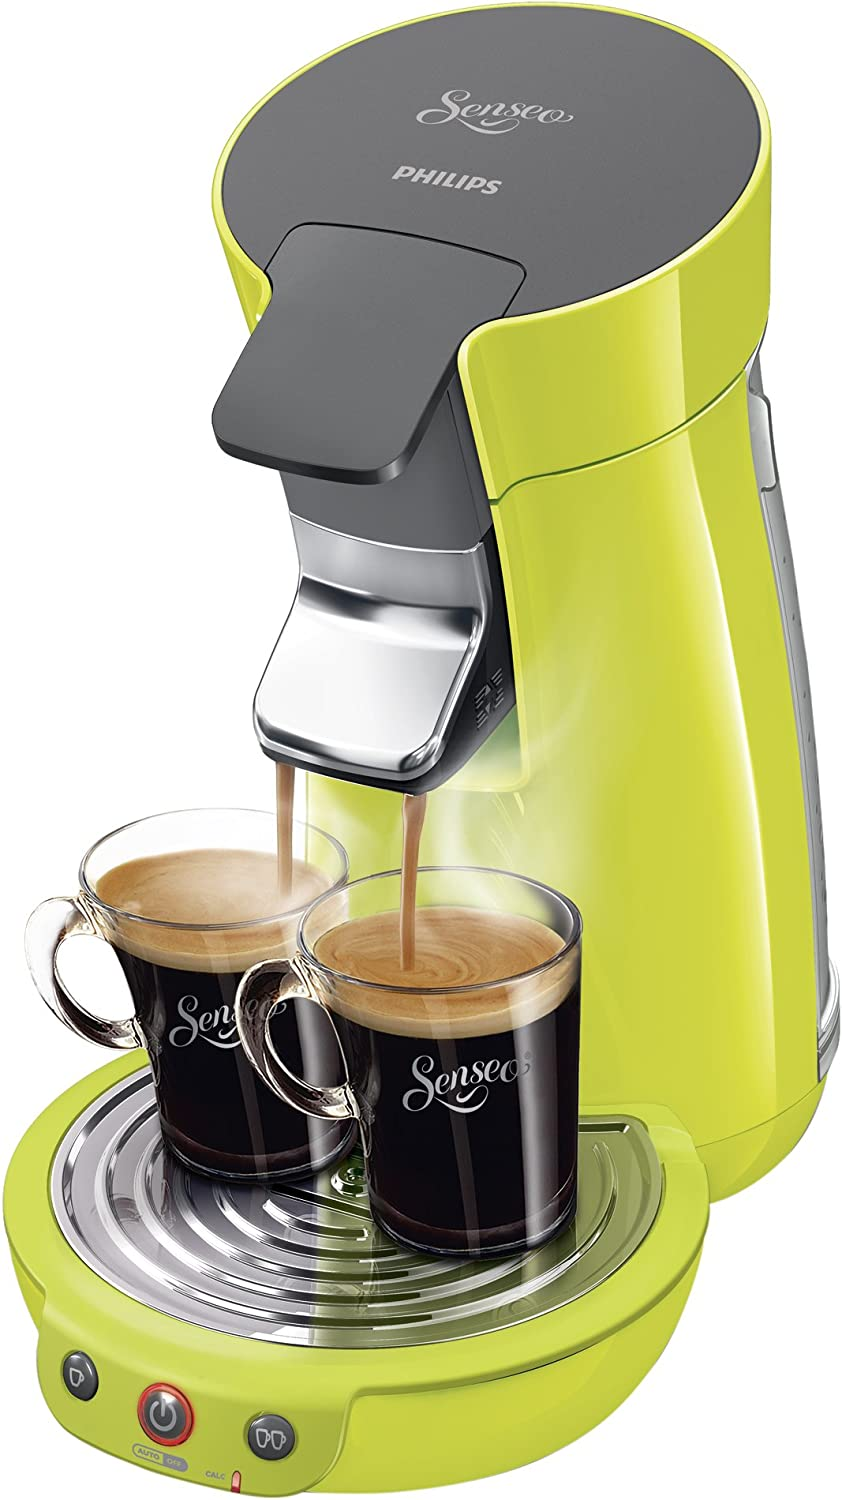 Philips HD7825/10 Senseo Viva Café United Colours - Cafetera, color verde lima: Amazon.es: Hogar